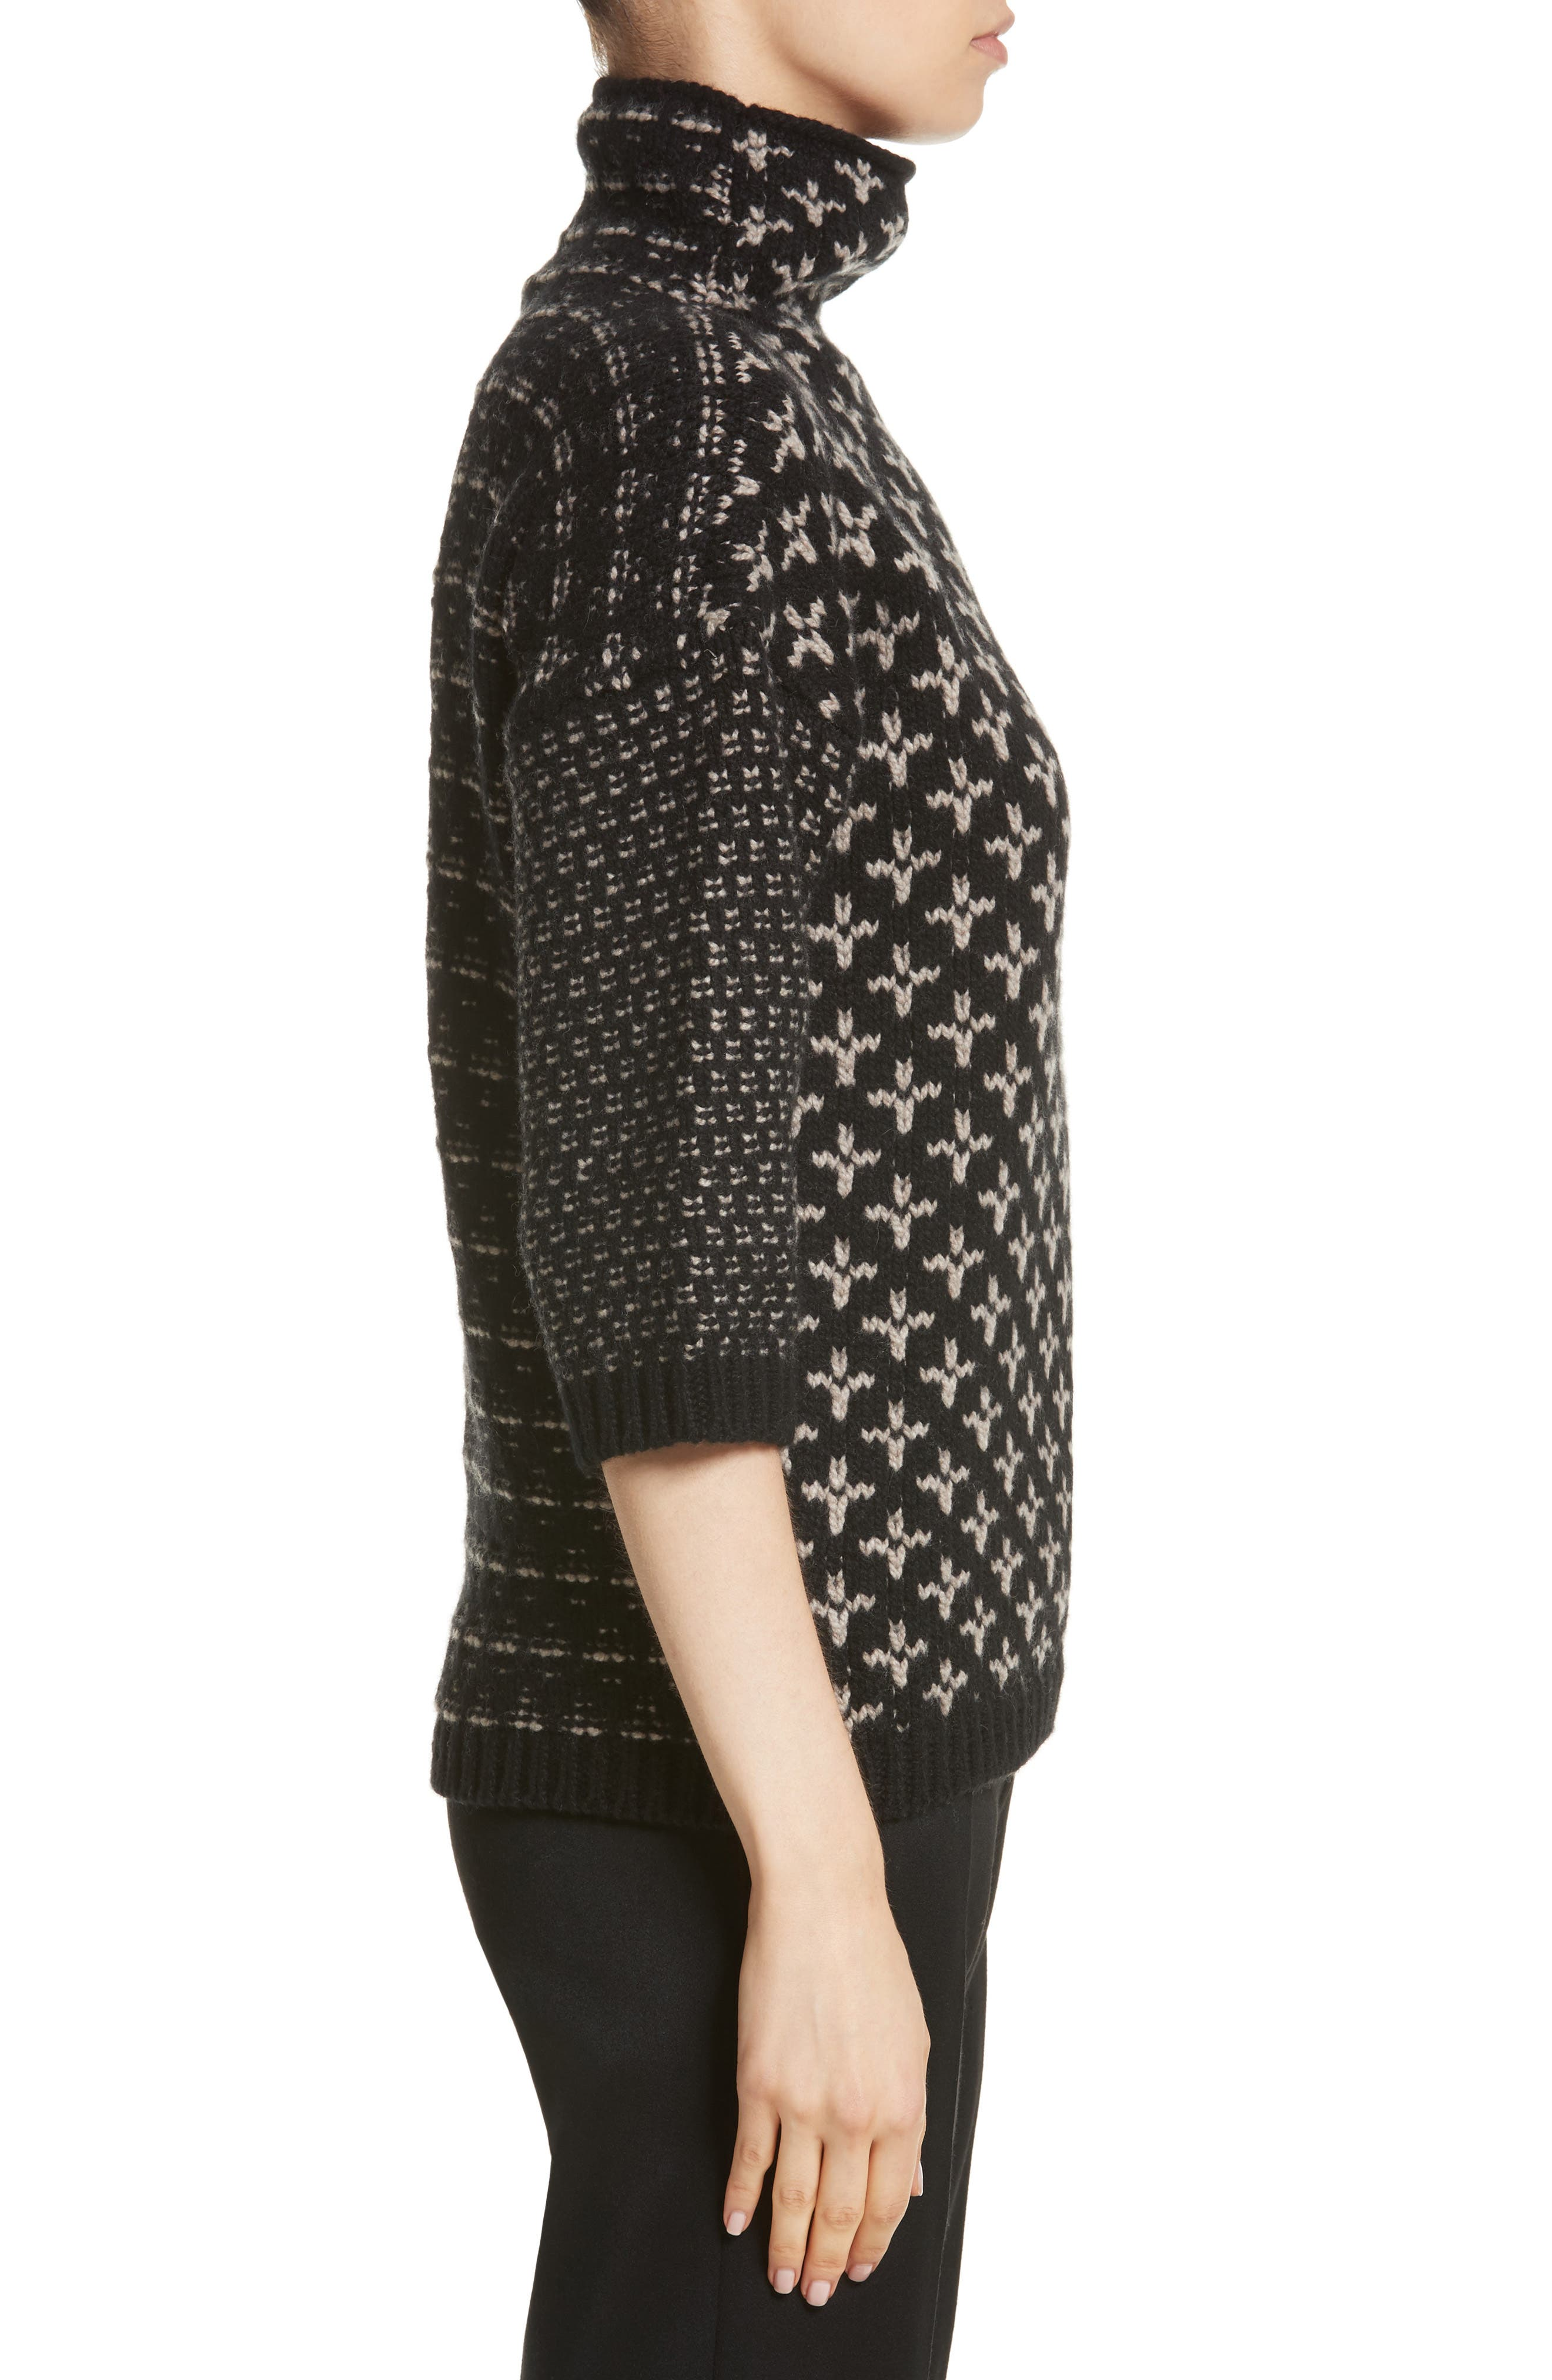 Rana Wool & Cashmere Sweater,                             Alternate thumbnail 3, color,                             Black